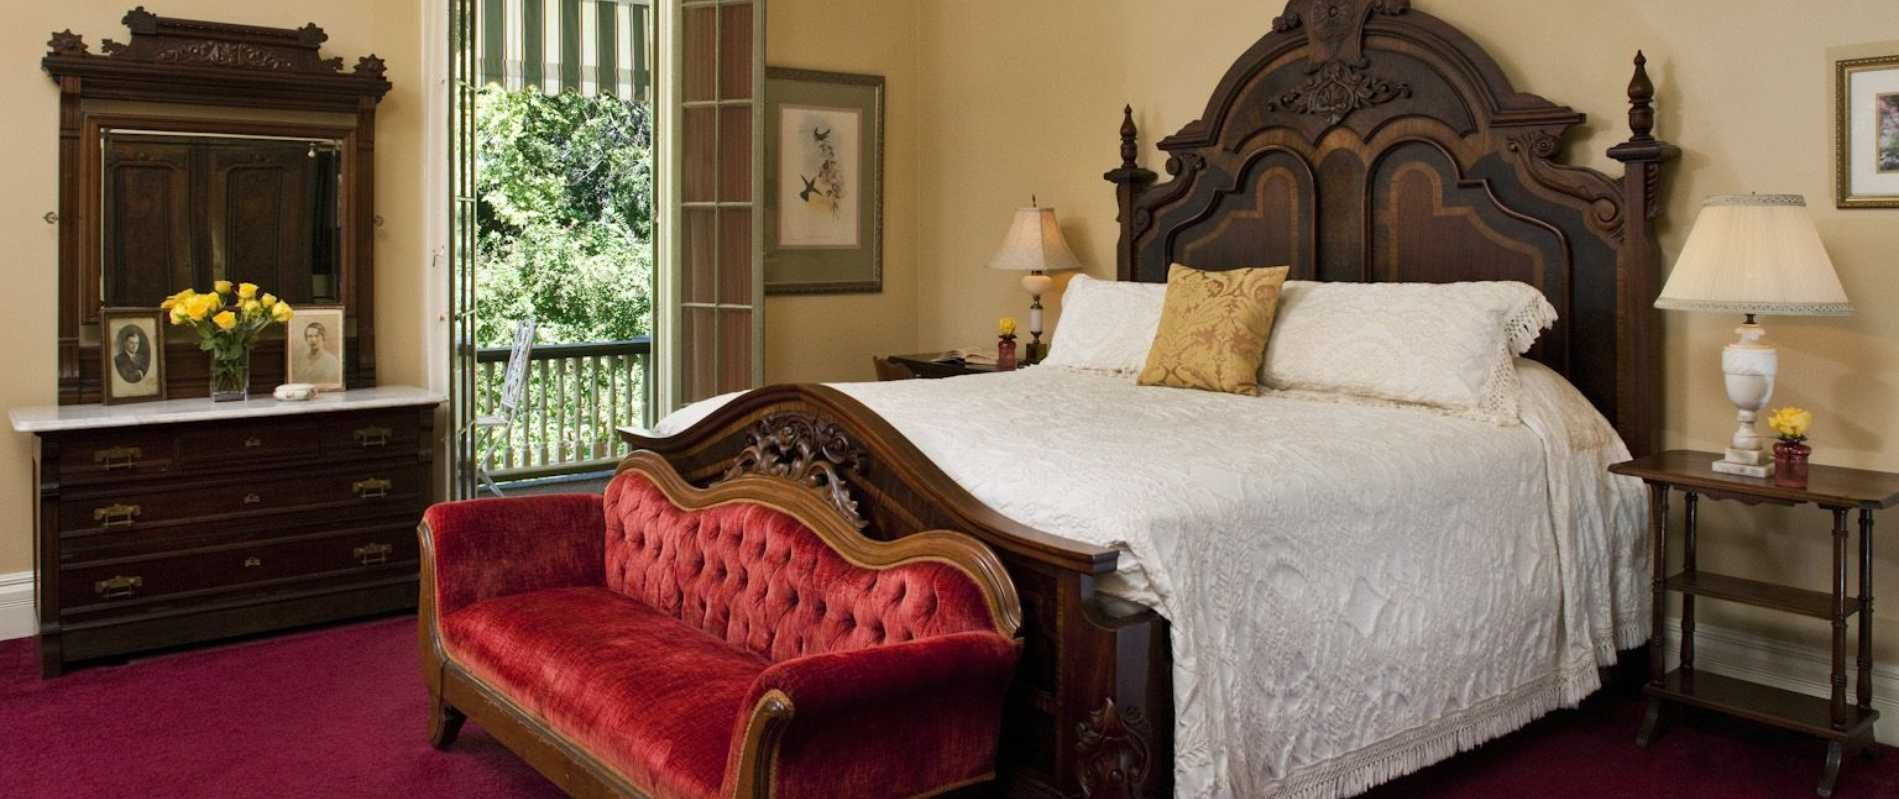 Pin by Lydia Smith on MISSISSIPPI Maine house, Bed